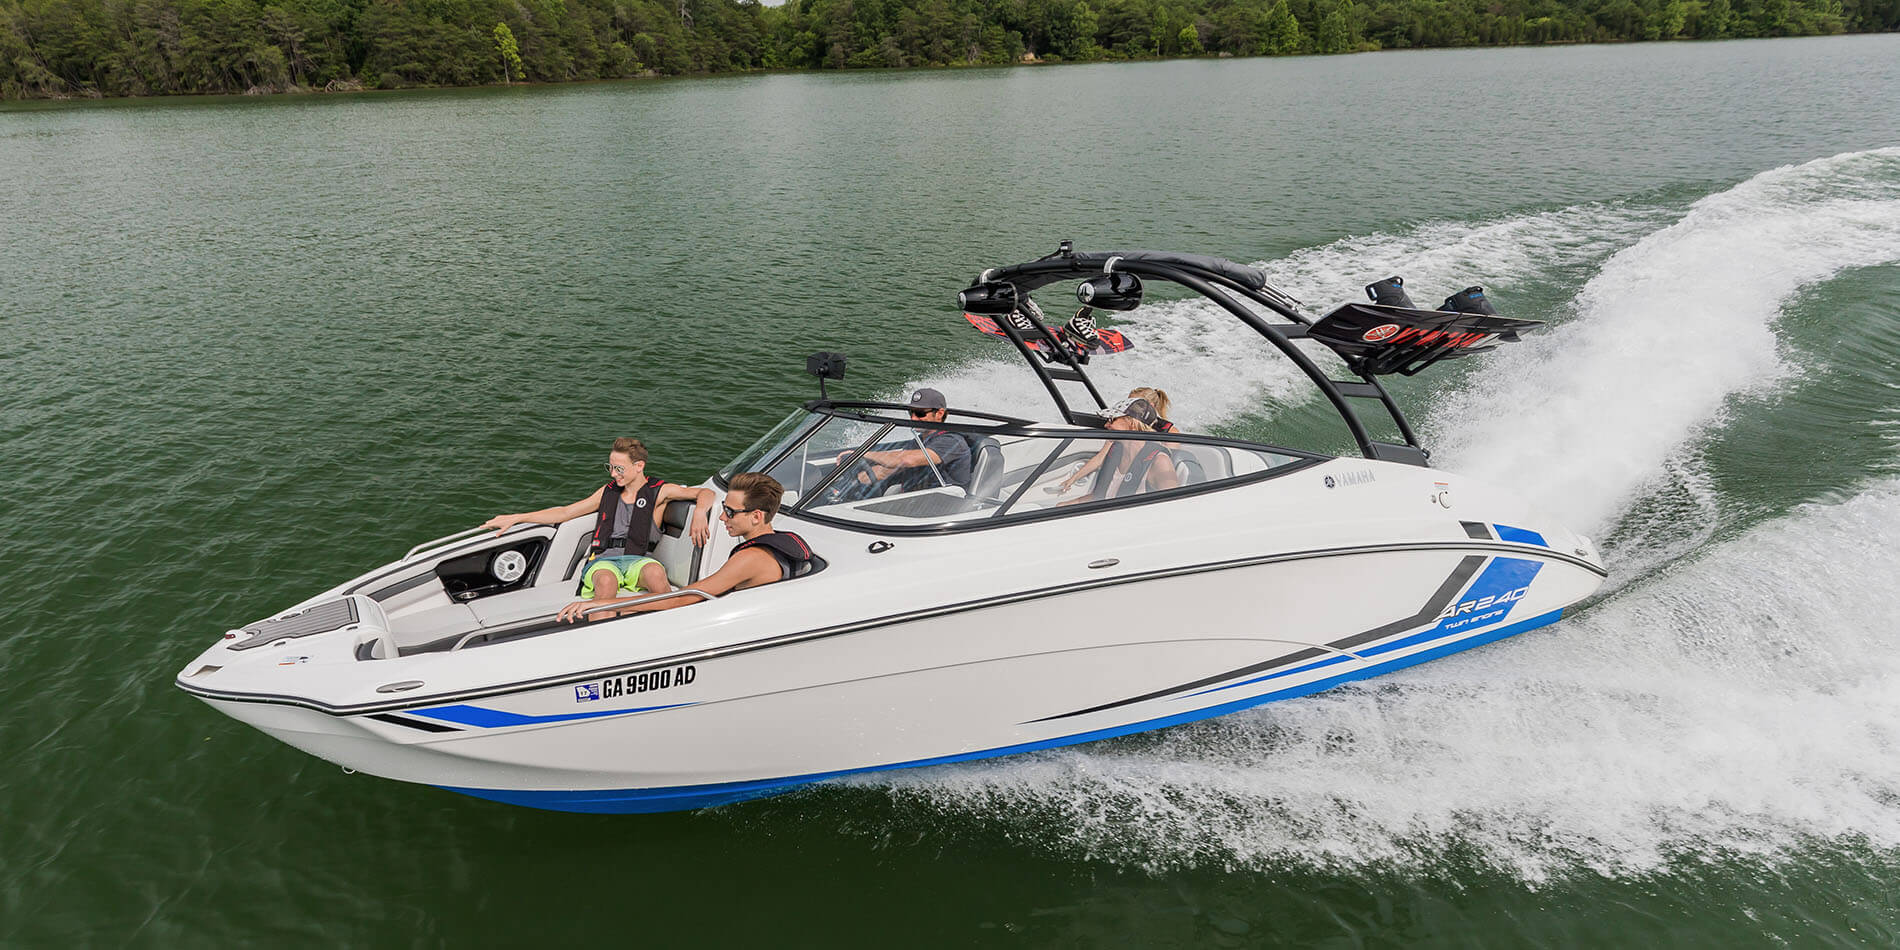 Yamaha boats ar240 2018 white blue cruising wakeboards for 2018 yamaha jet boat